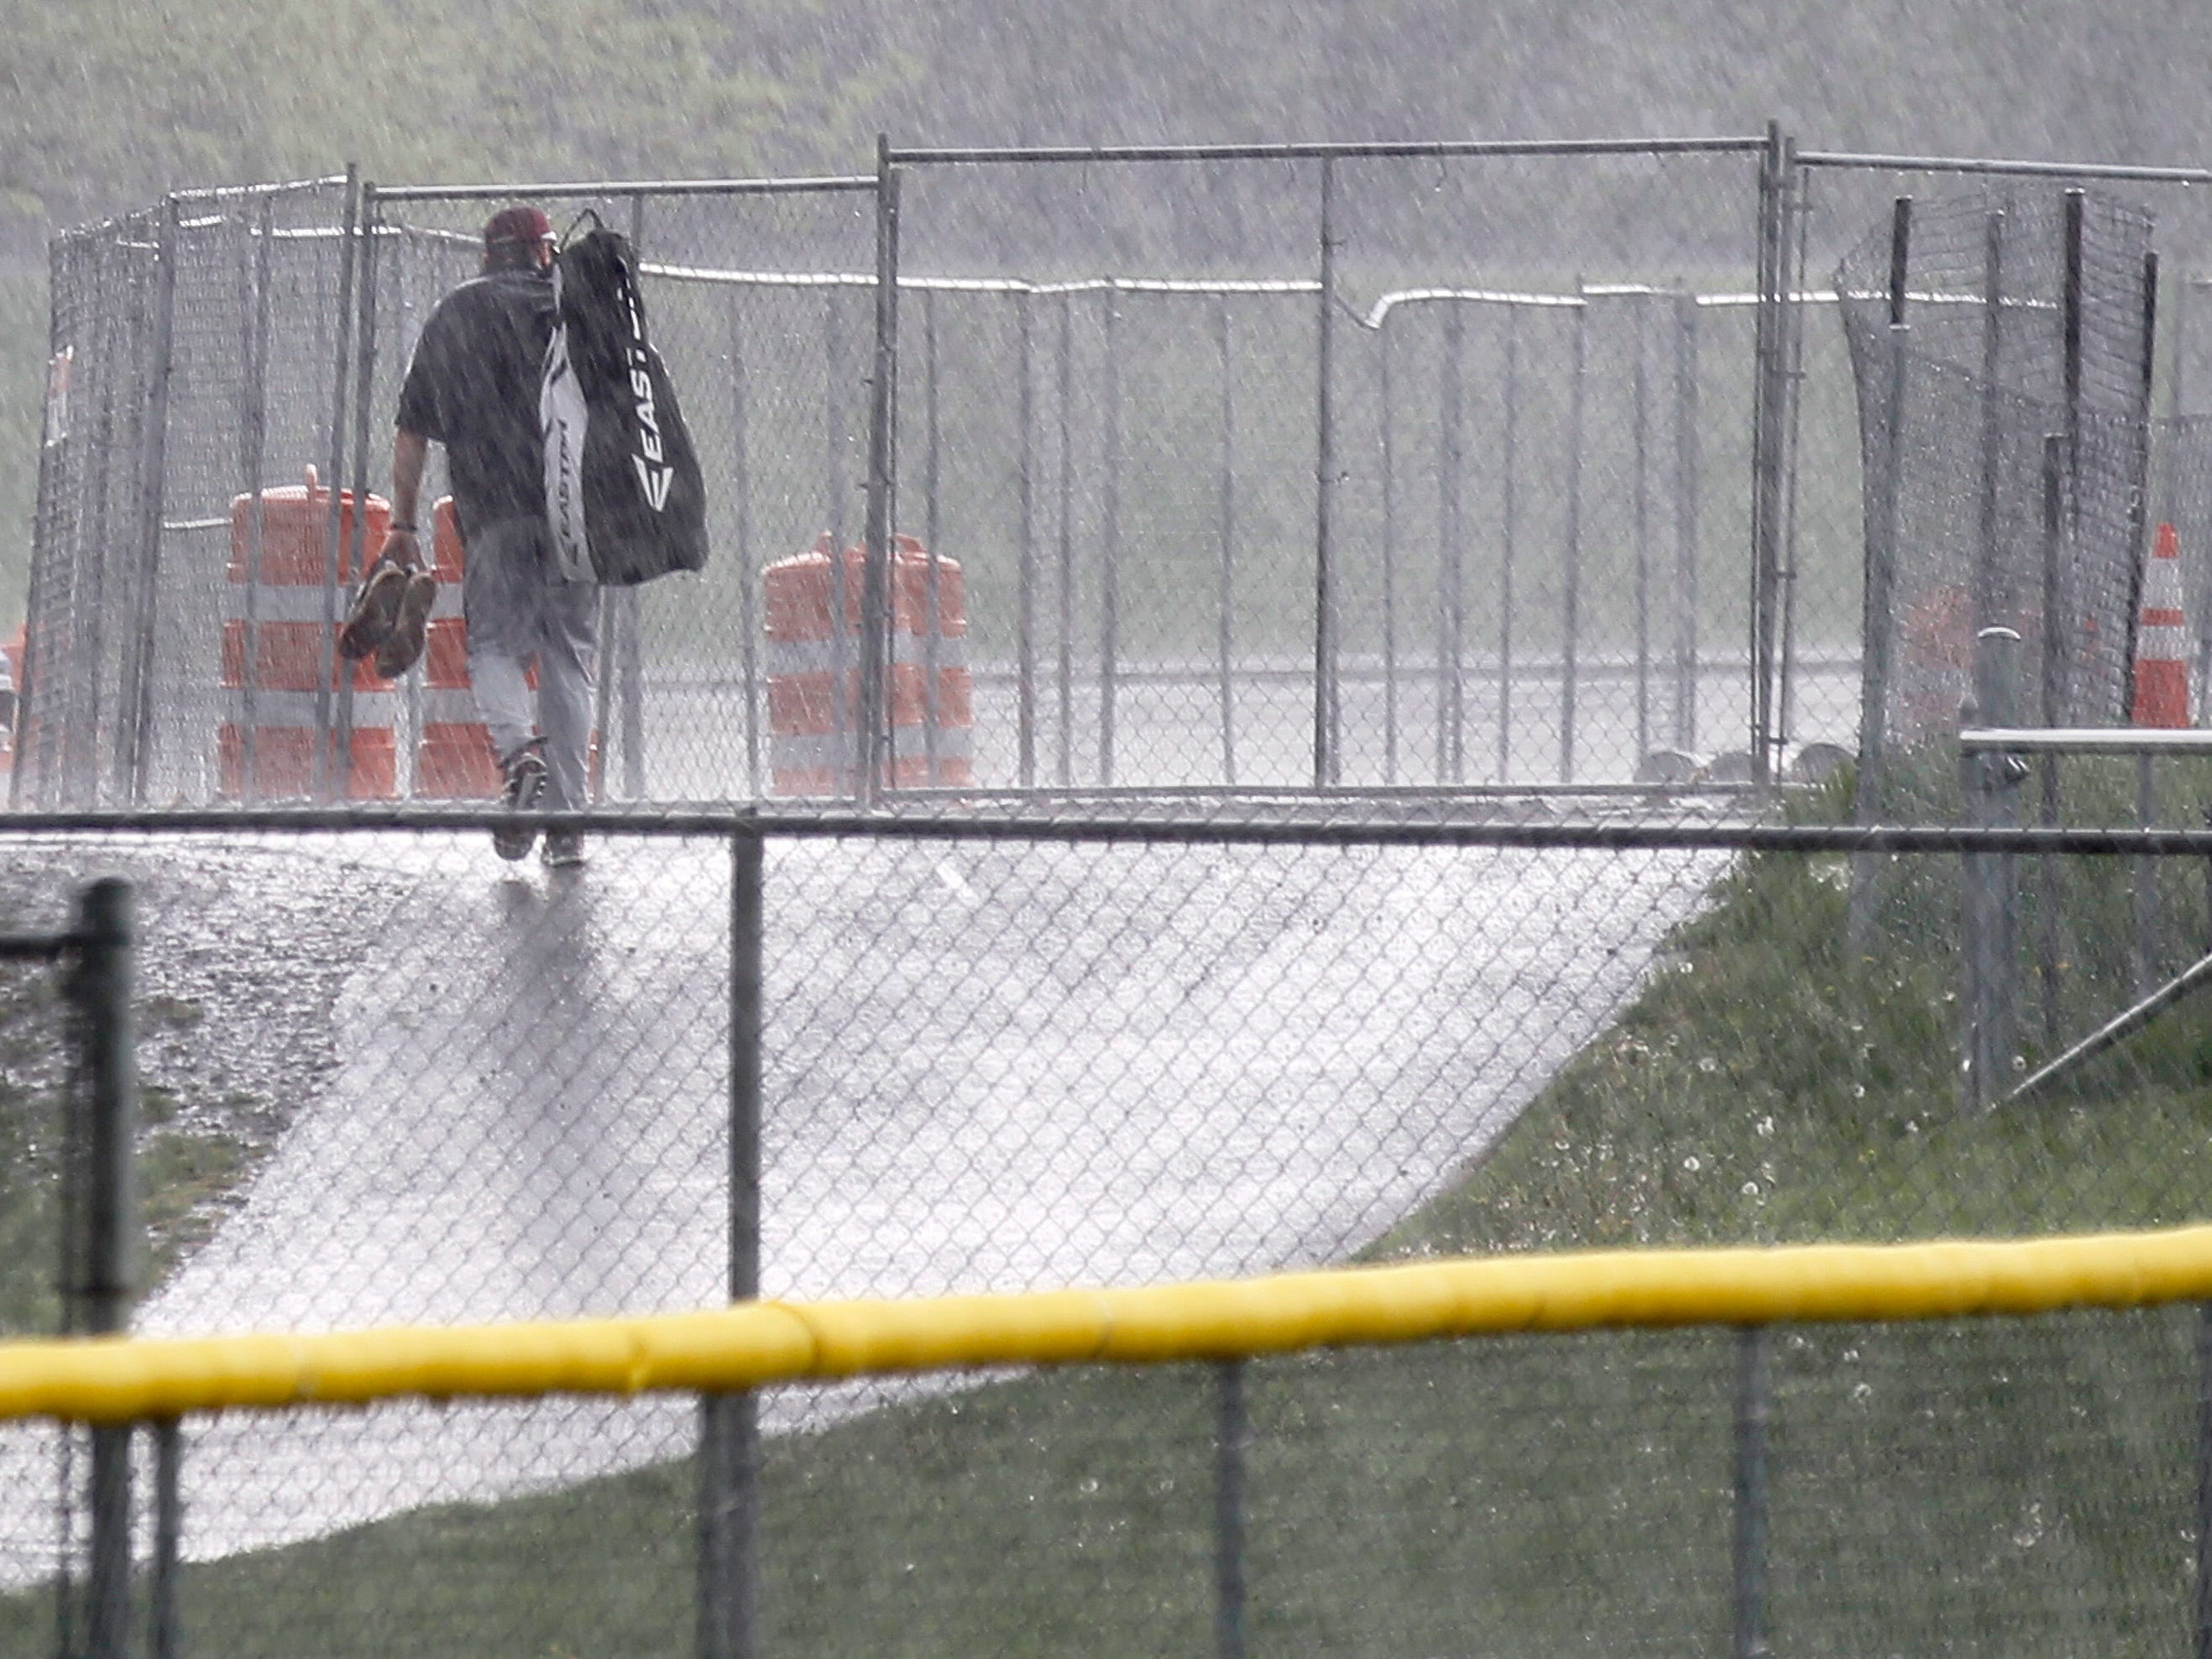 One of the coaches of Pittsford Mendon baseball heads to the parking lot in a driving rain after their game vs. Pittsford Sutherland was called off.